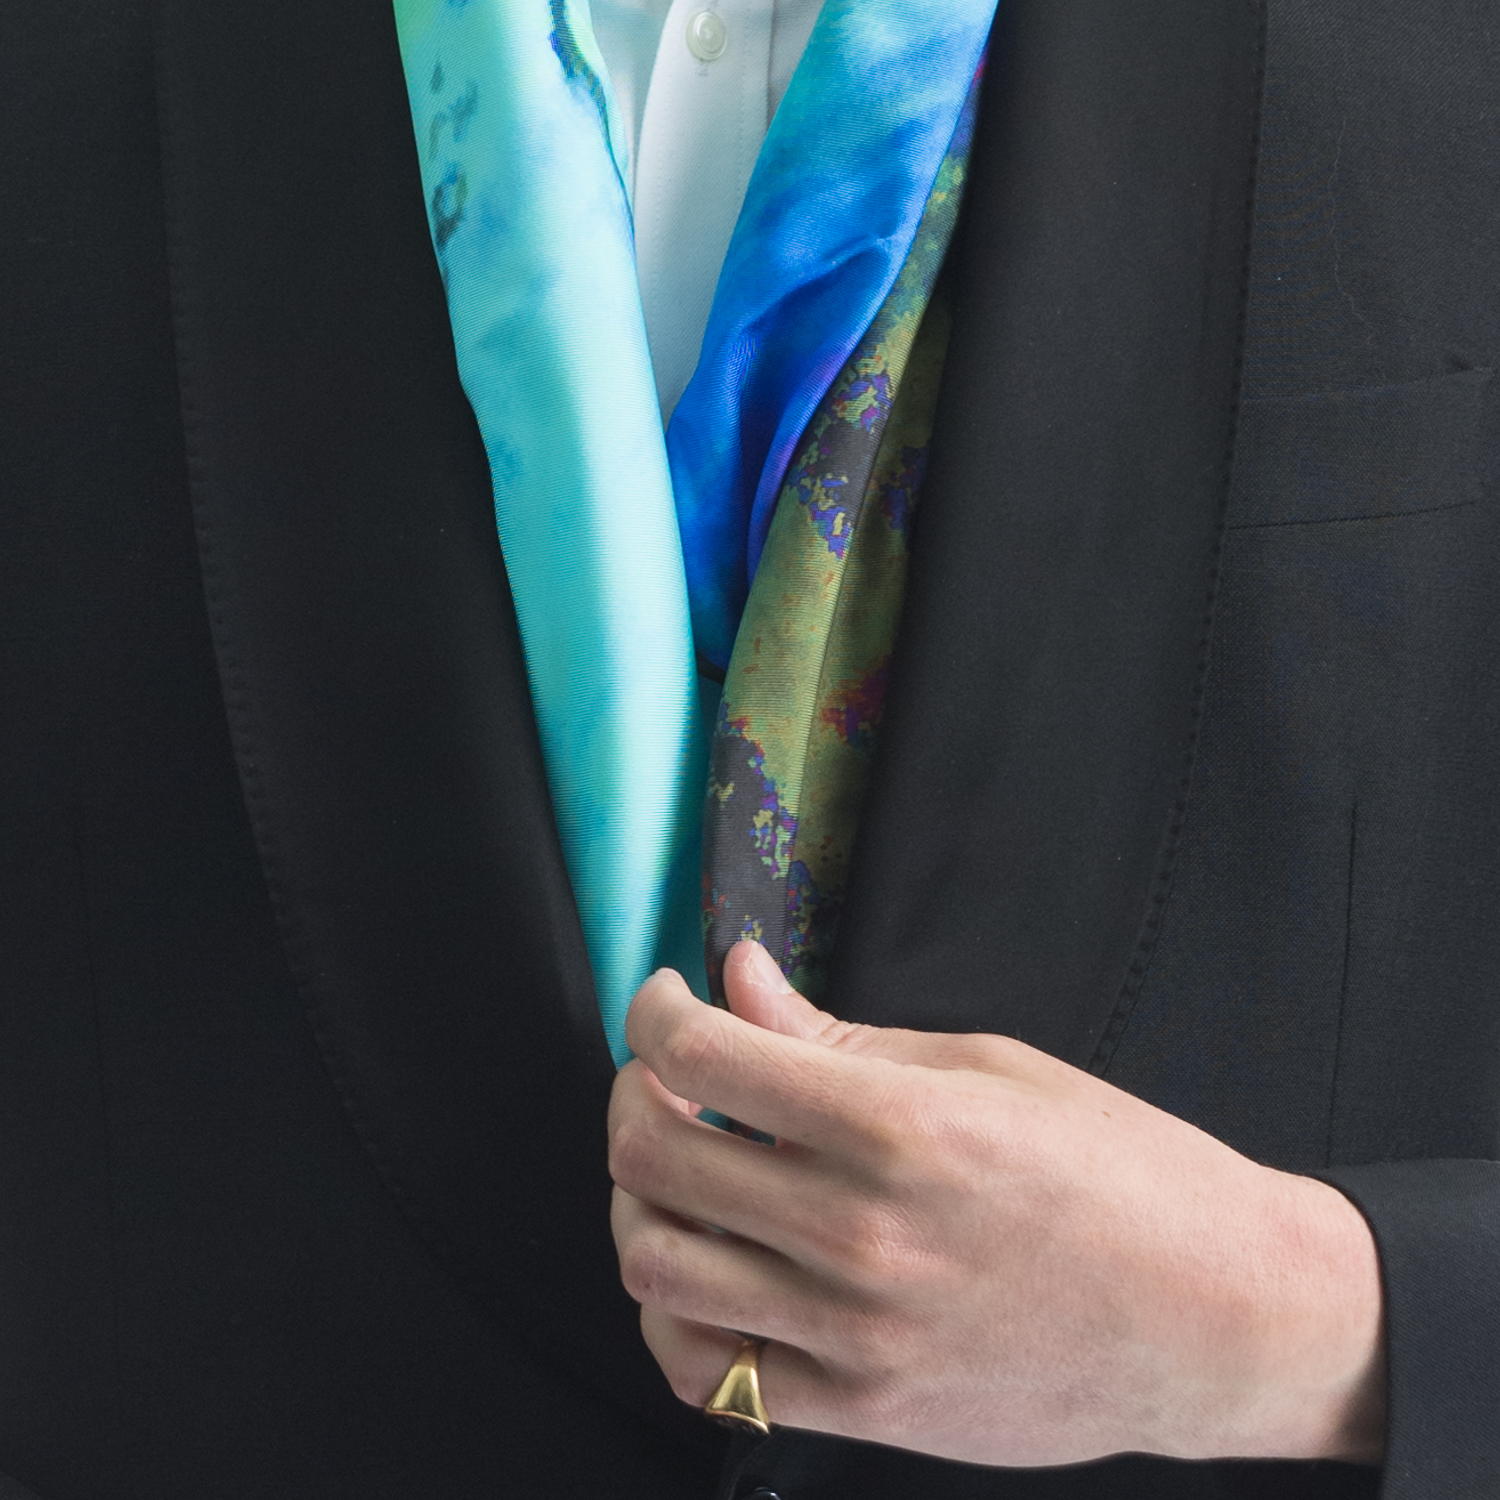 Rosemary Goodenough Man 'Twiggery IV' Scarf Detail.jpg